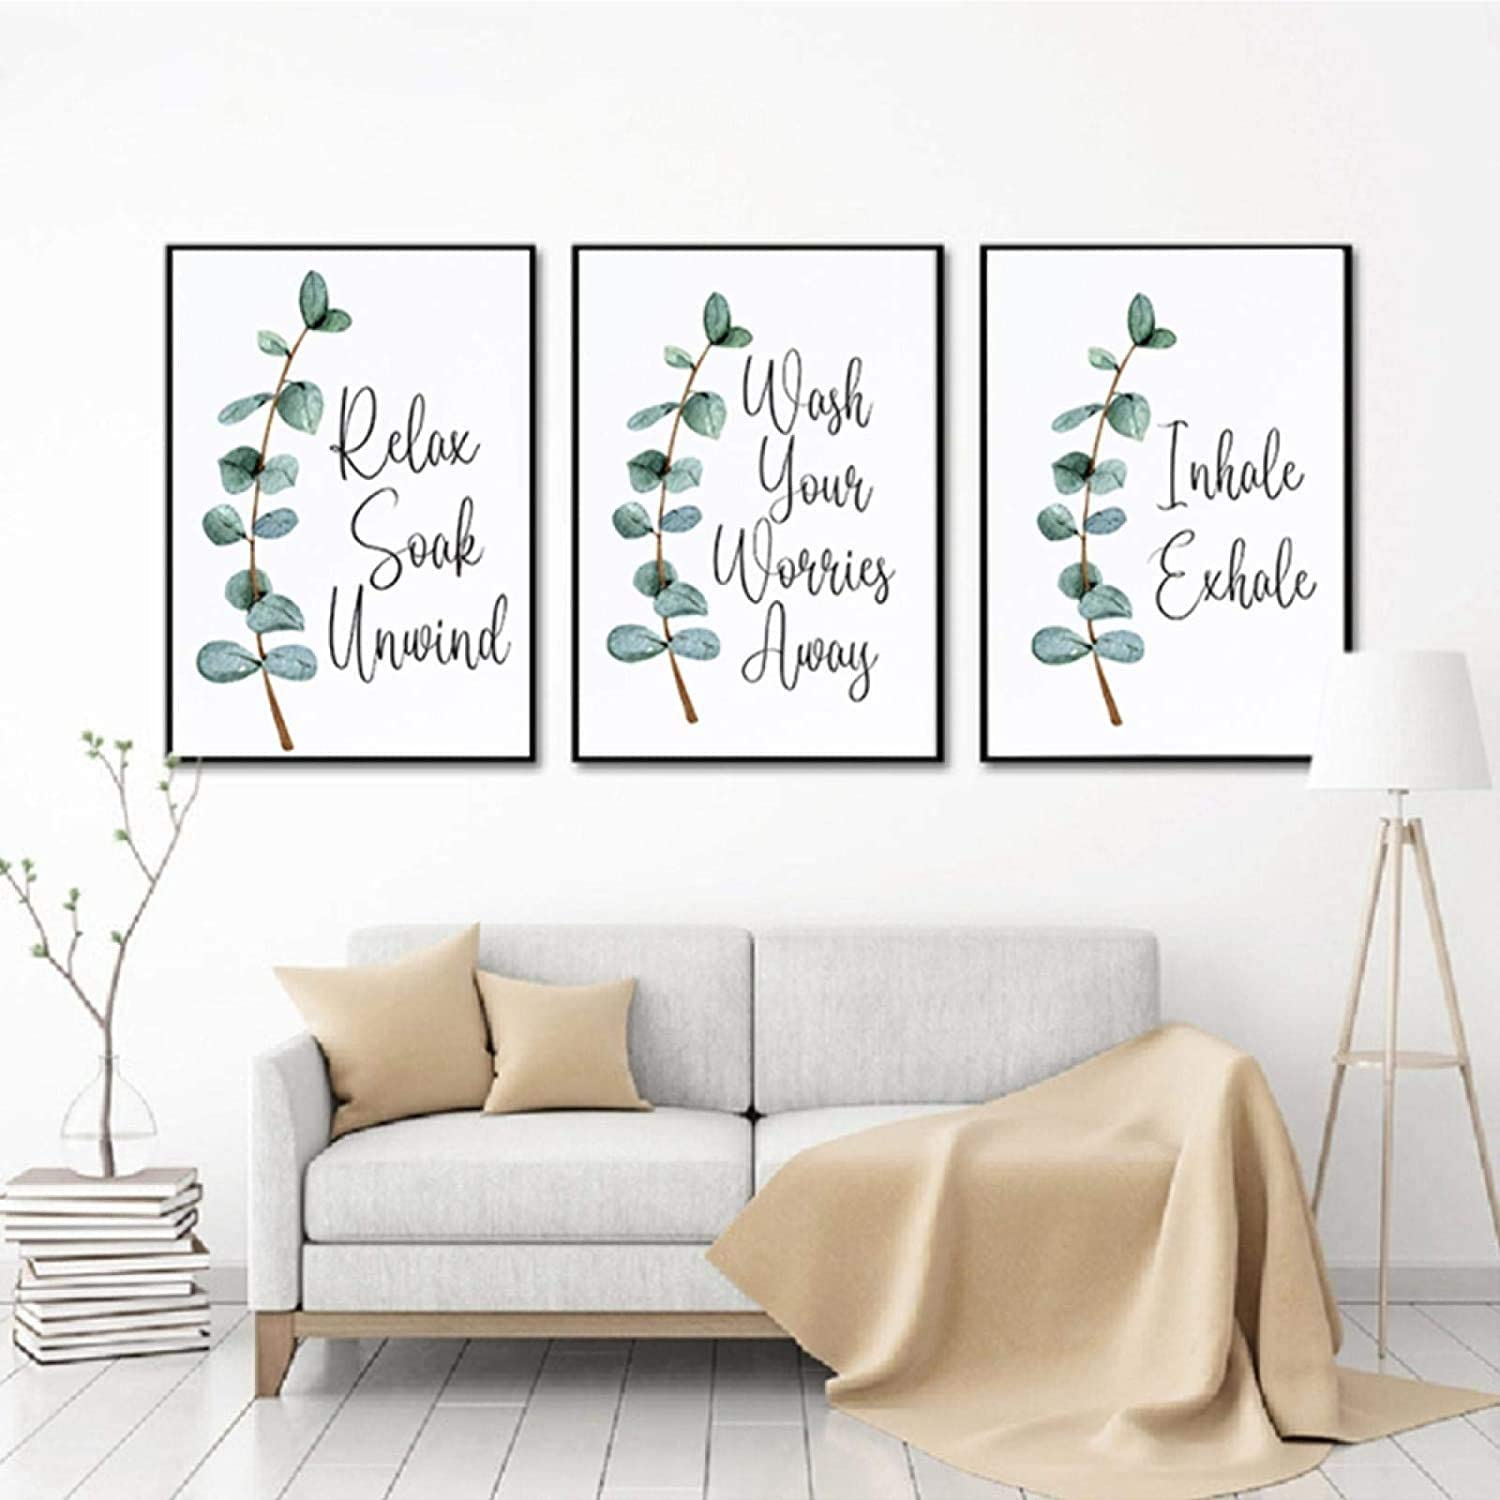 12x18 inch,Unframed Inhale Exhale Canvas and Prints Toilet Quote Modular Botanical Wall Art for Canvas Painting 3Psc//Set